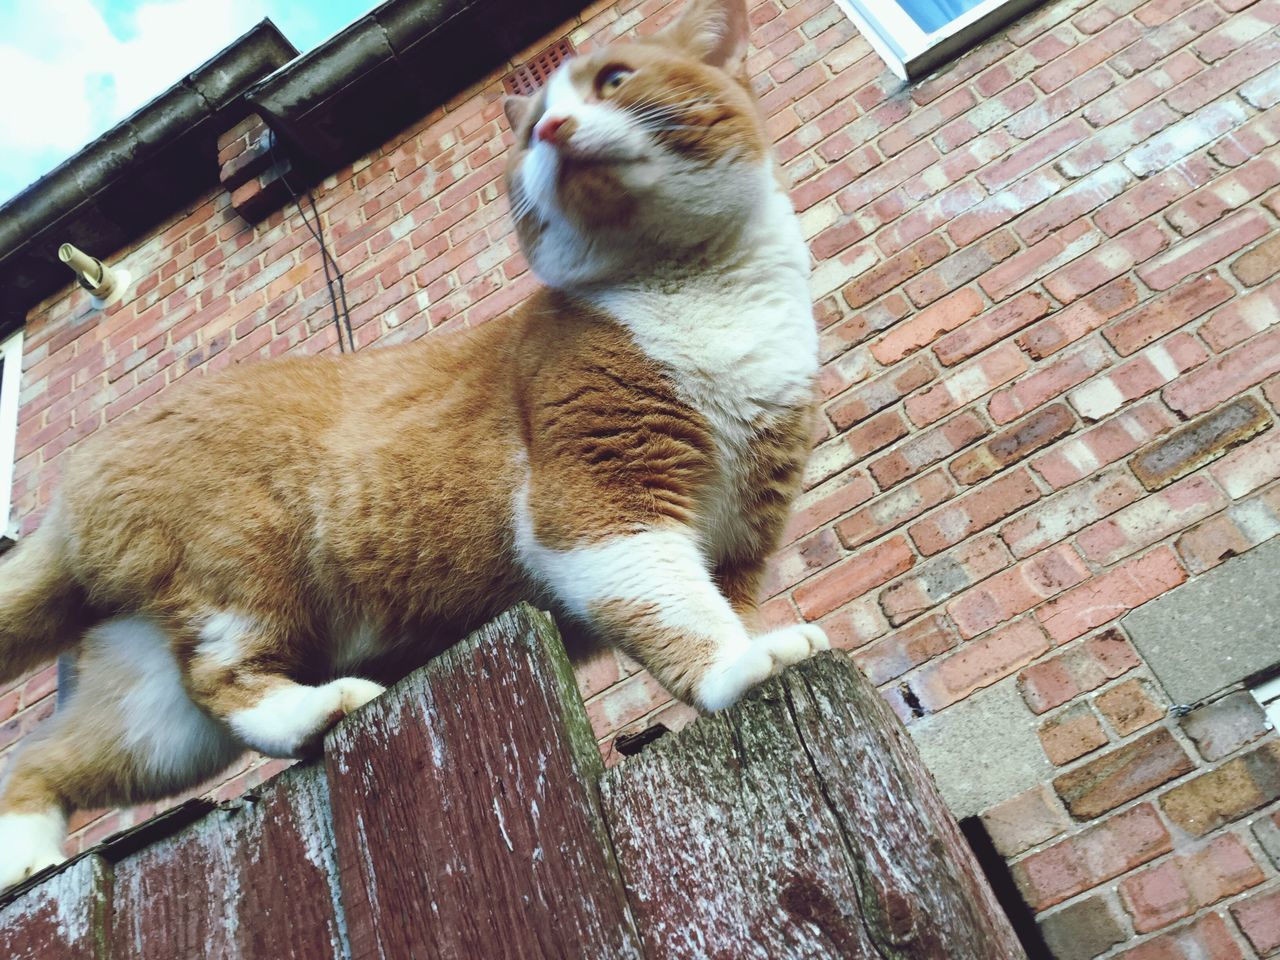 domestic cat, domestic animals, animal themes, pets, feline, one animal, mammal, cat, no people, day, outdoors